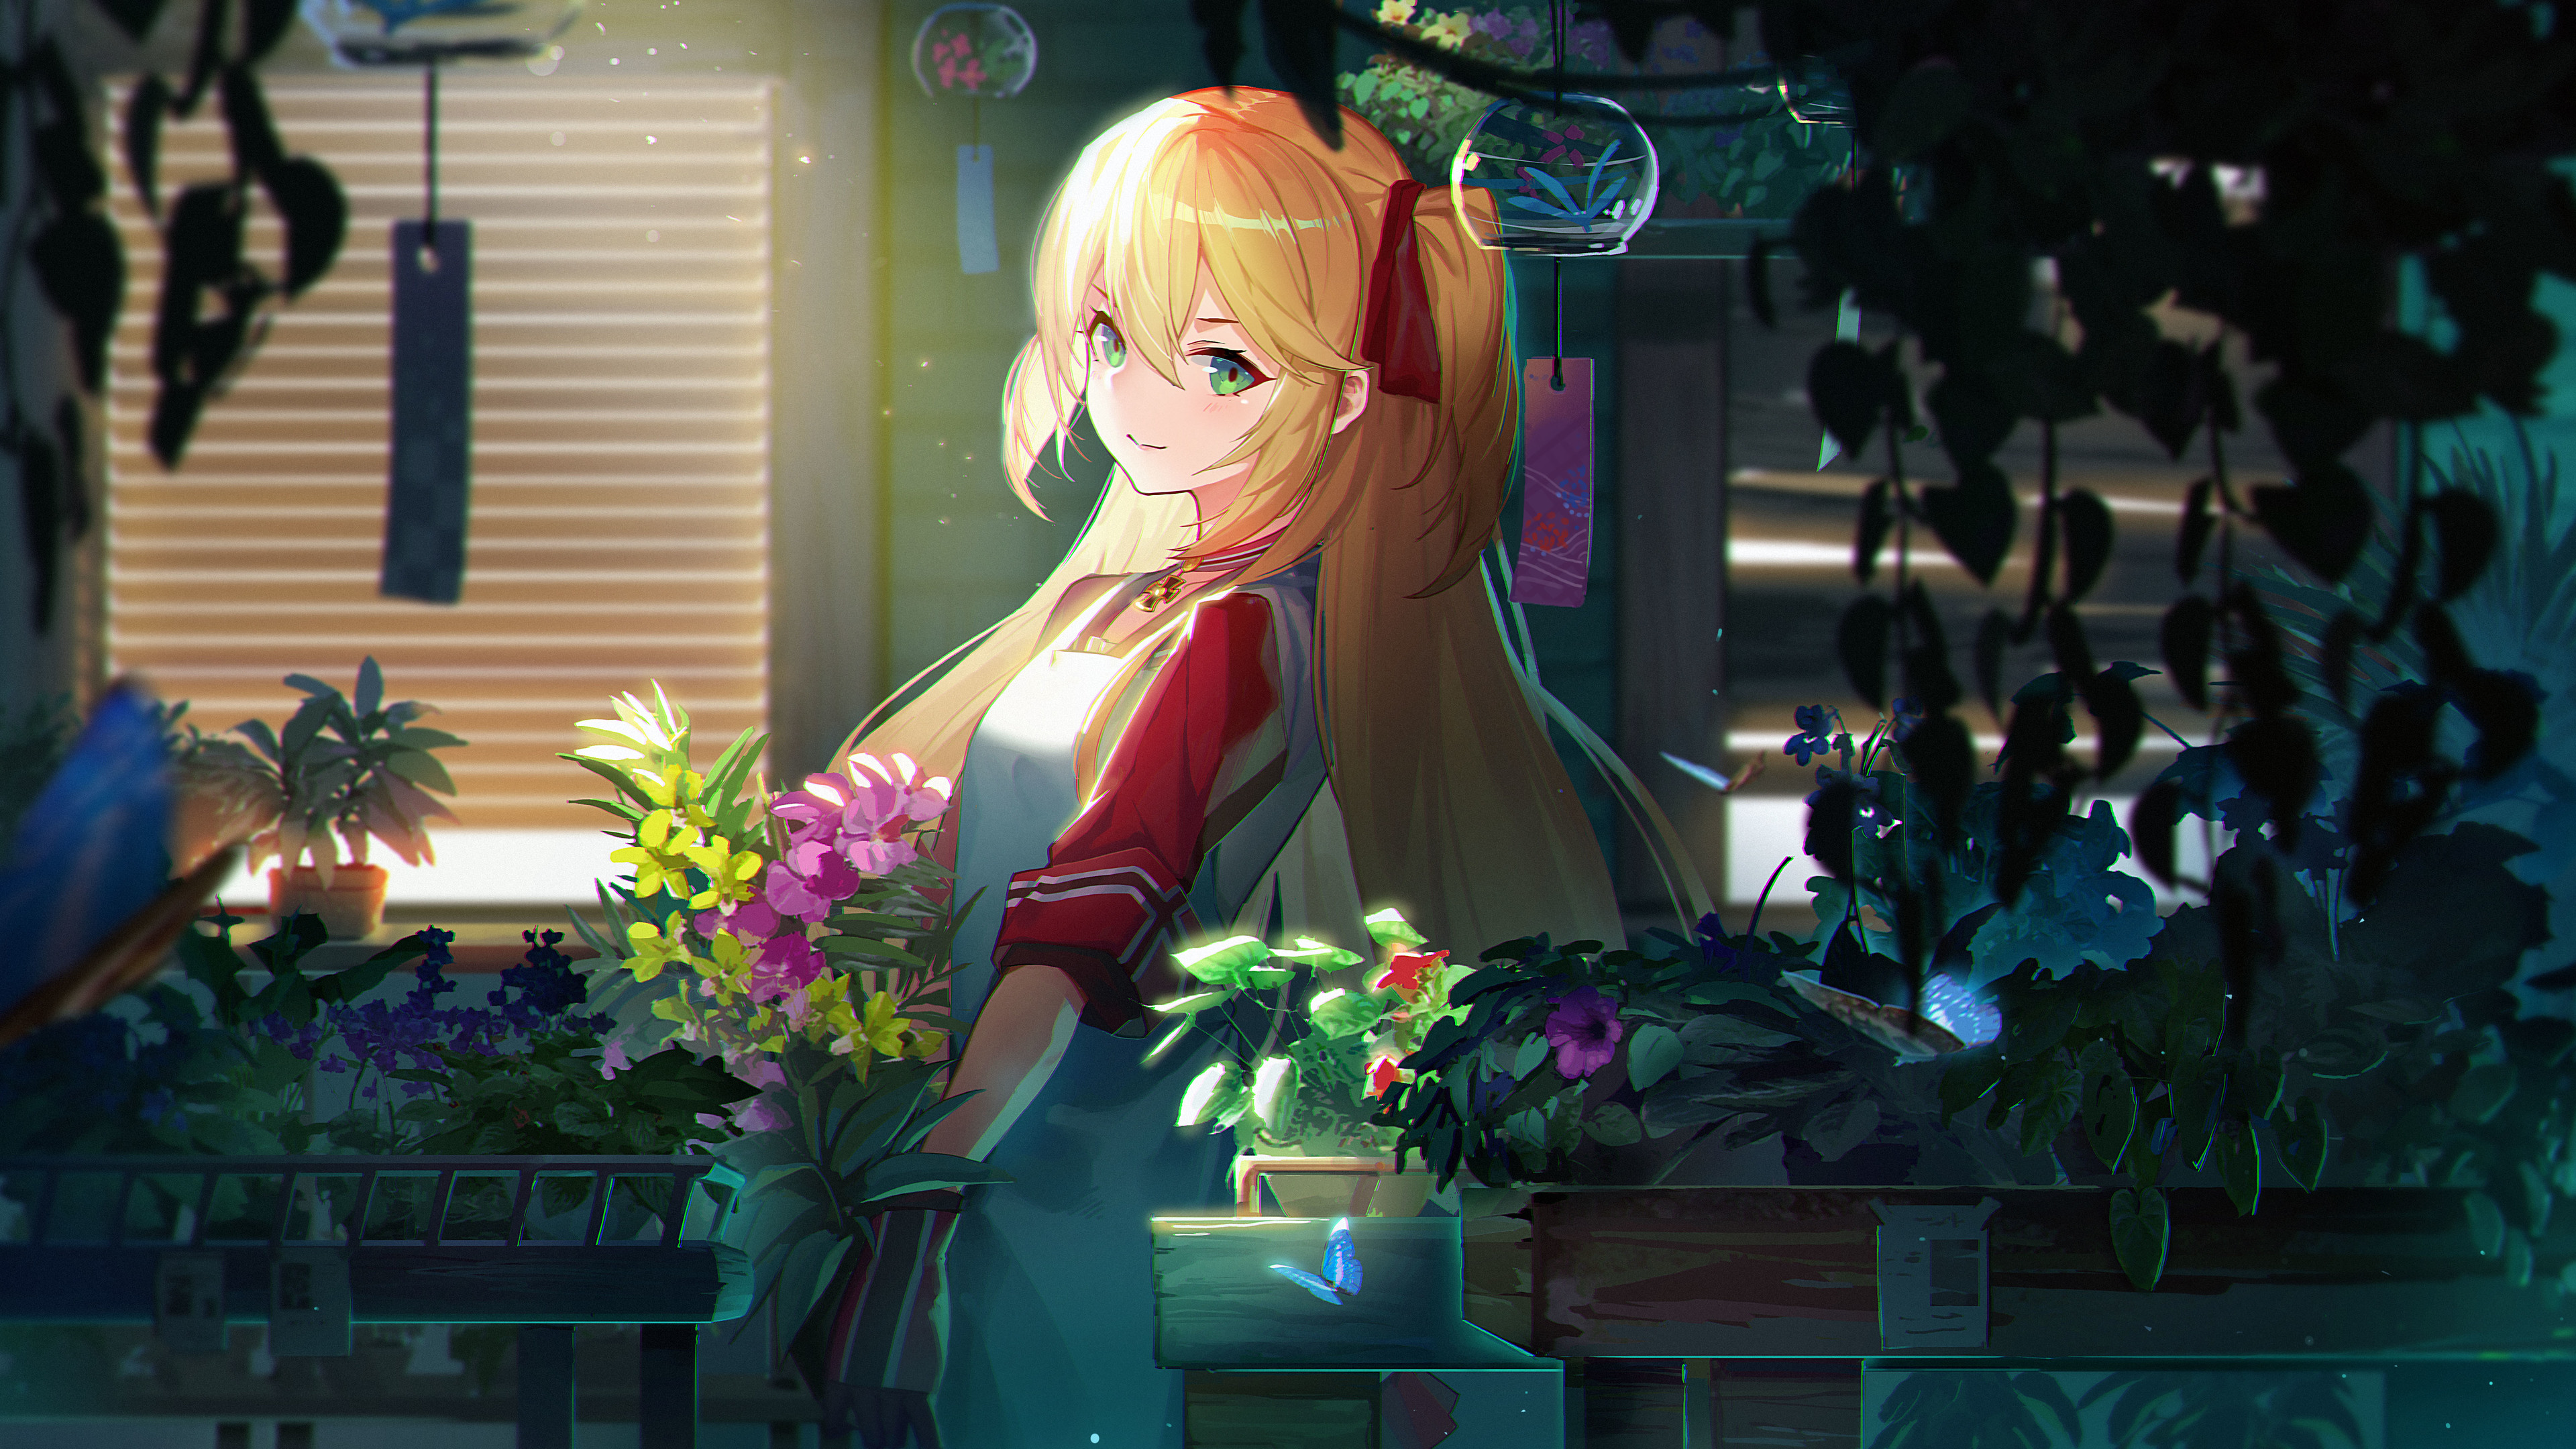 anime flowers blonde twintails girl 1541973928 - Anime Flowers Blonde Twintails Girl - hd-wallpapers, flowers wallpapers, digital art wallpapers, artwork wallpapers, artist wallpapers, anime wallpapers, anime girl wallpapers